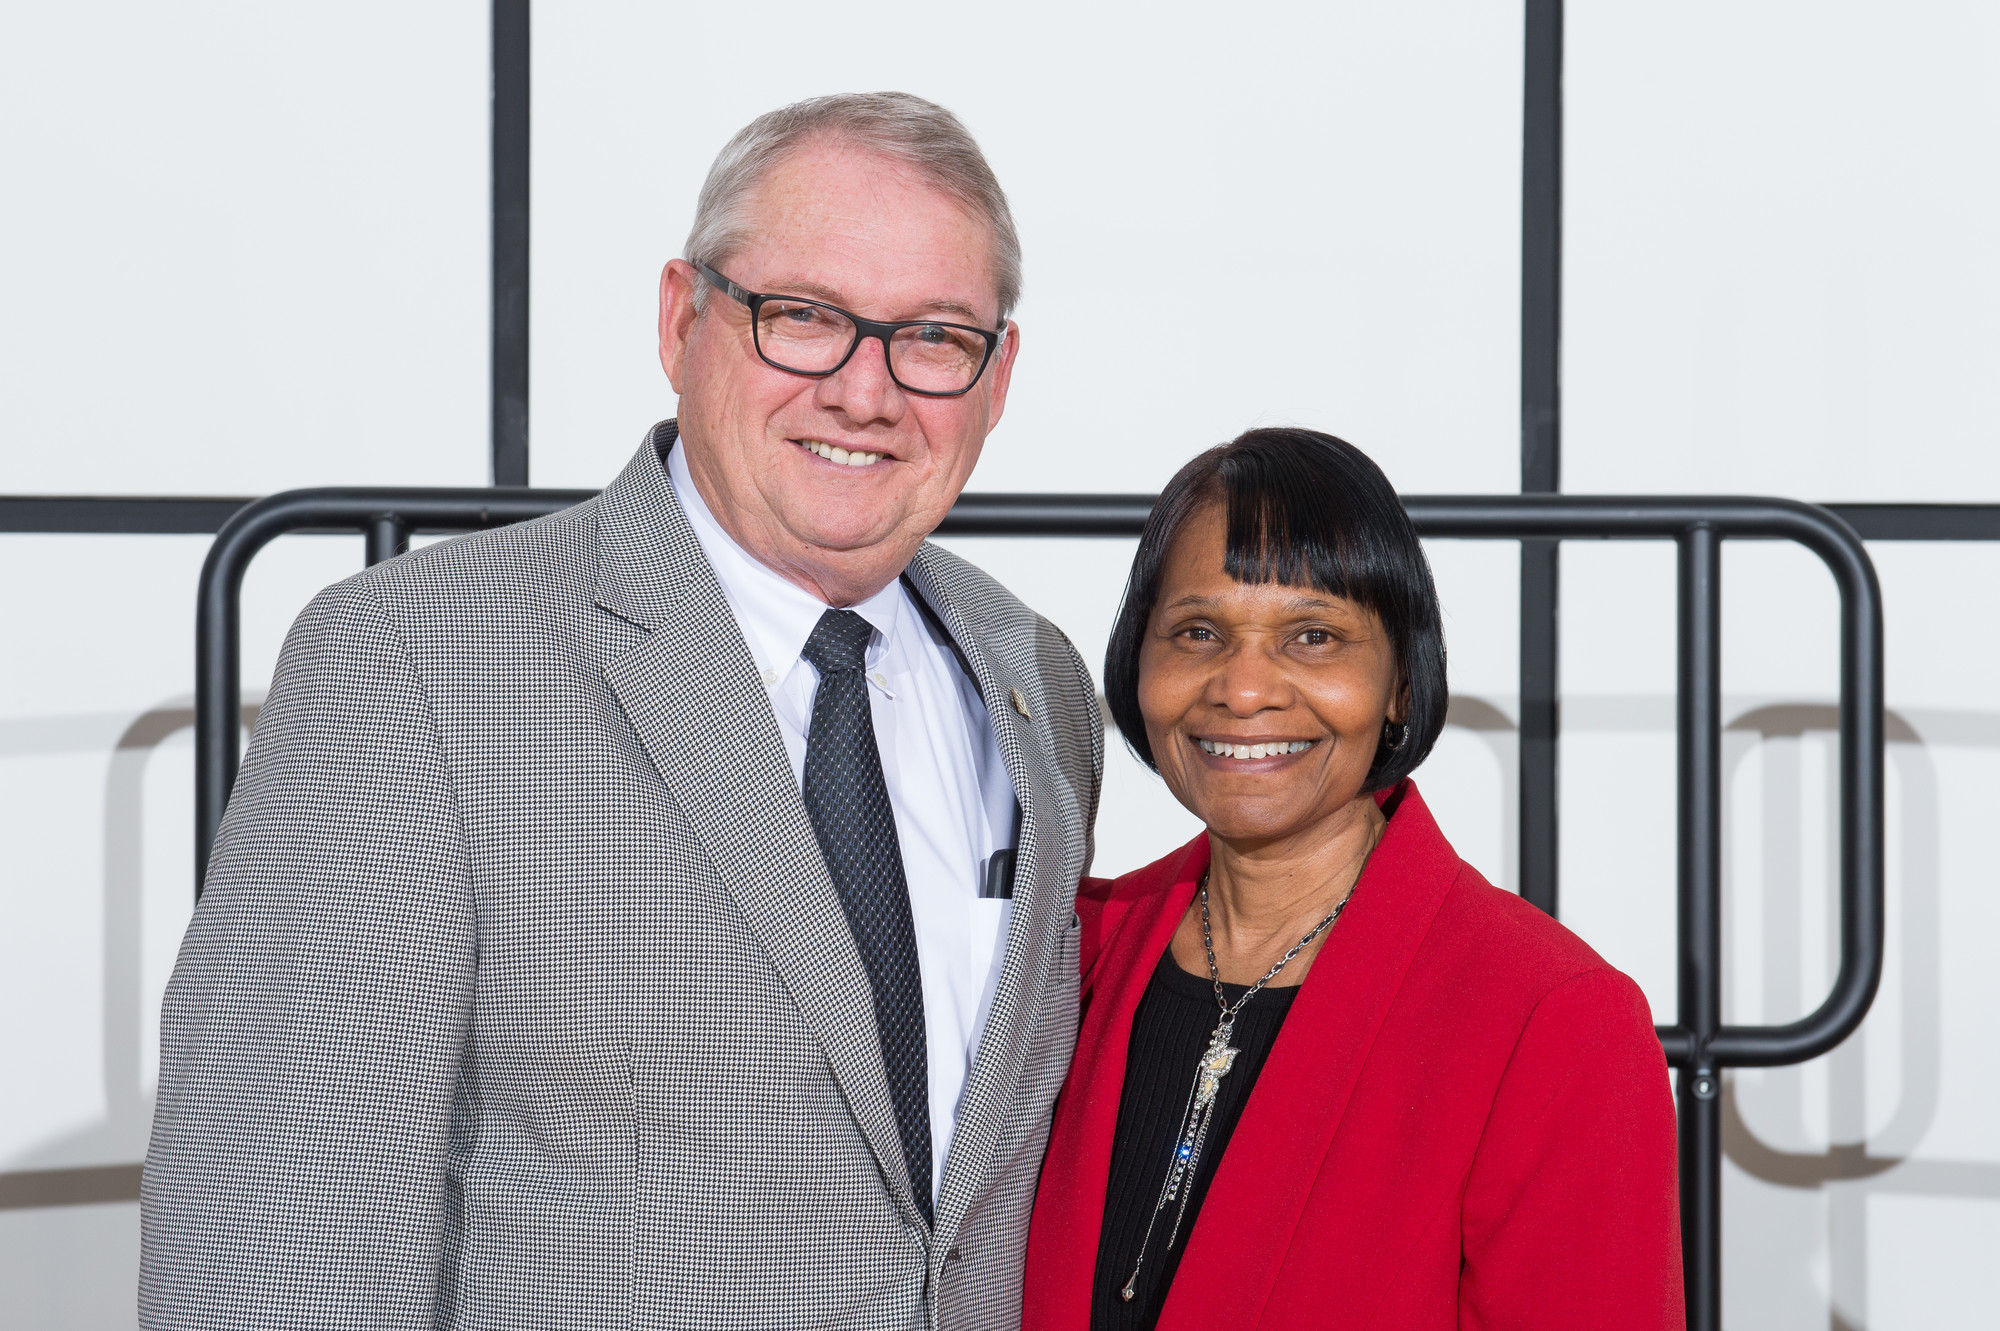 President Bachand with Debwin Williams, financial aid advisor.